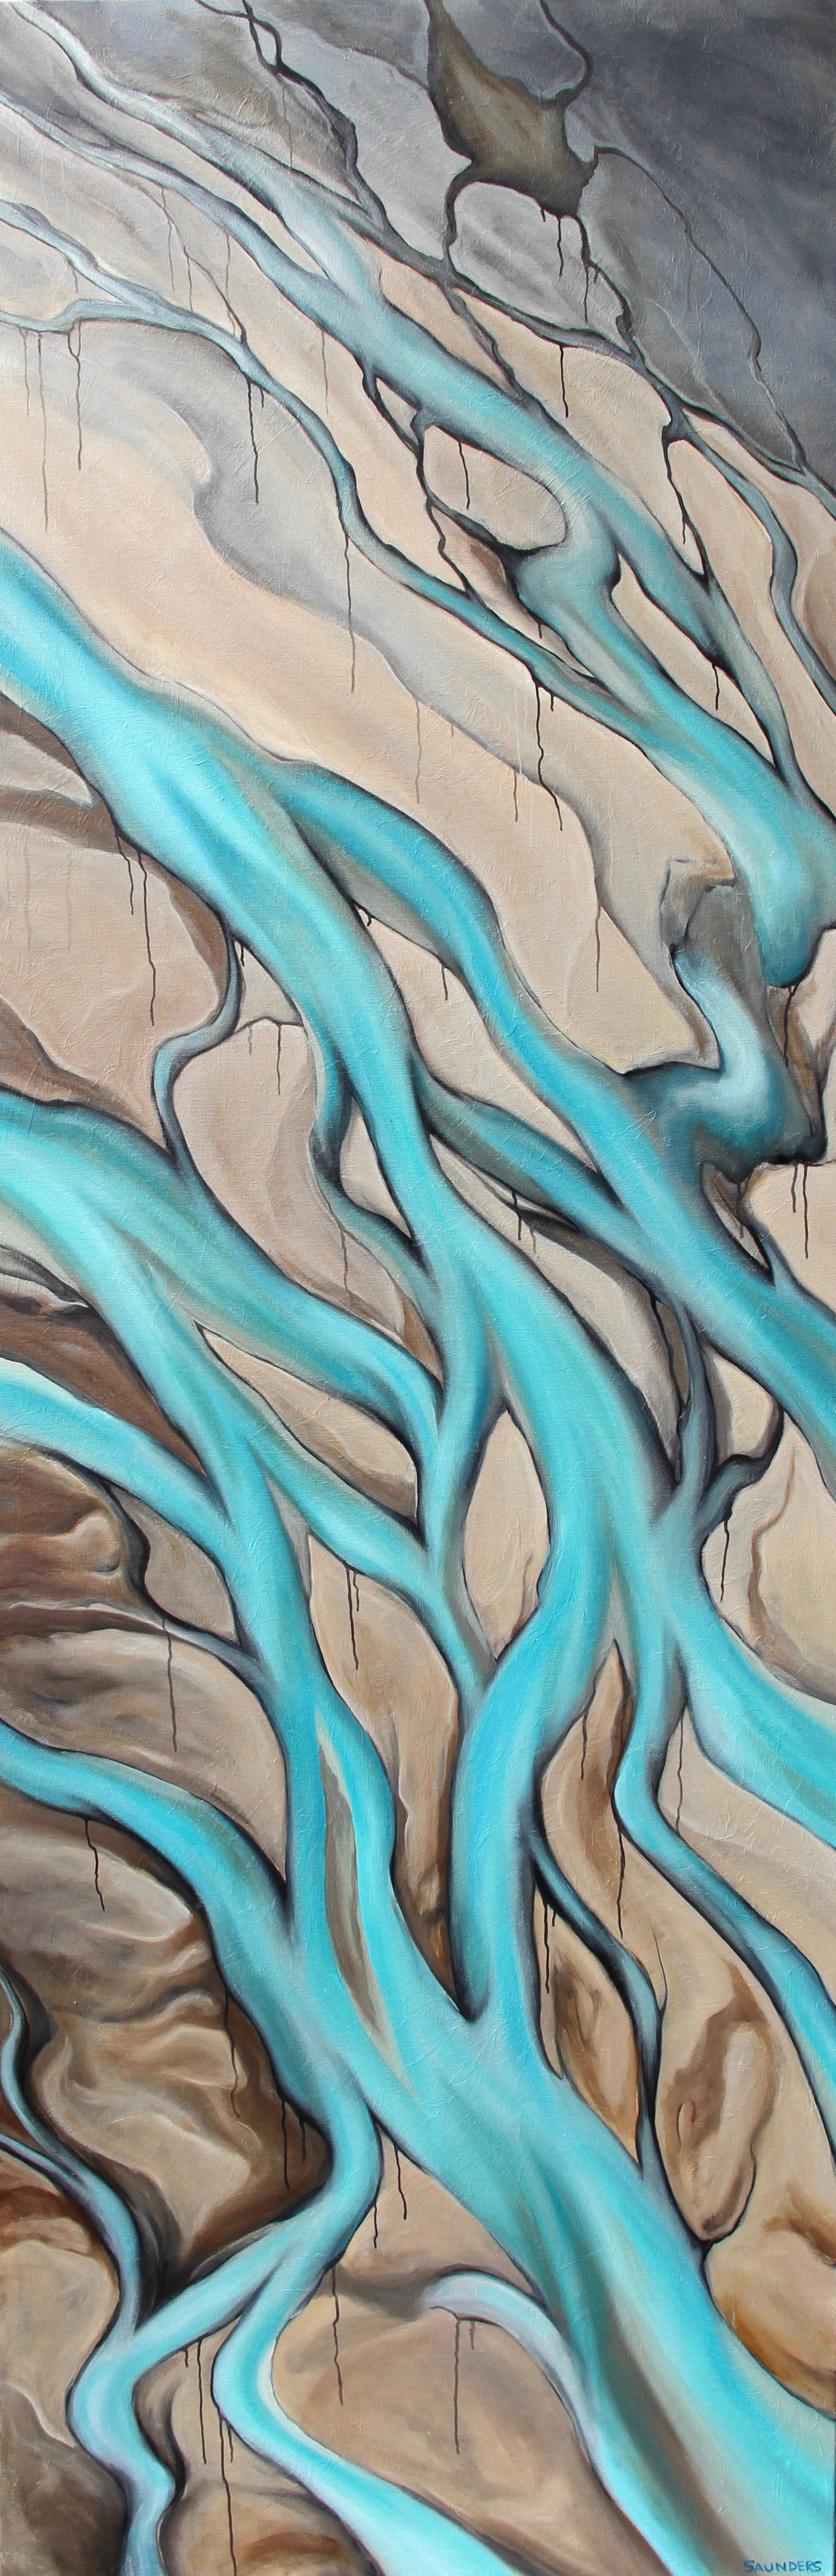 Blue Veins      ($1,450) Oil- 72 x 24 inches.    Available for purchase.      The beauty in sadness? This is how I feel when I see the bright blue waters of a glacial flow. They are disappearing before our eyes and it tears my heart out to see the earth lay paths for the ice melt of the century. Will they be gone in fifty years? I will do my part for conservation and focus on the beauty of colors that I never knew existed until I saw them.      For information...